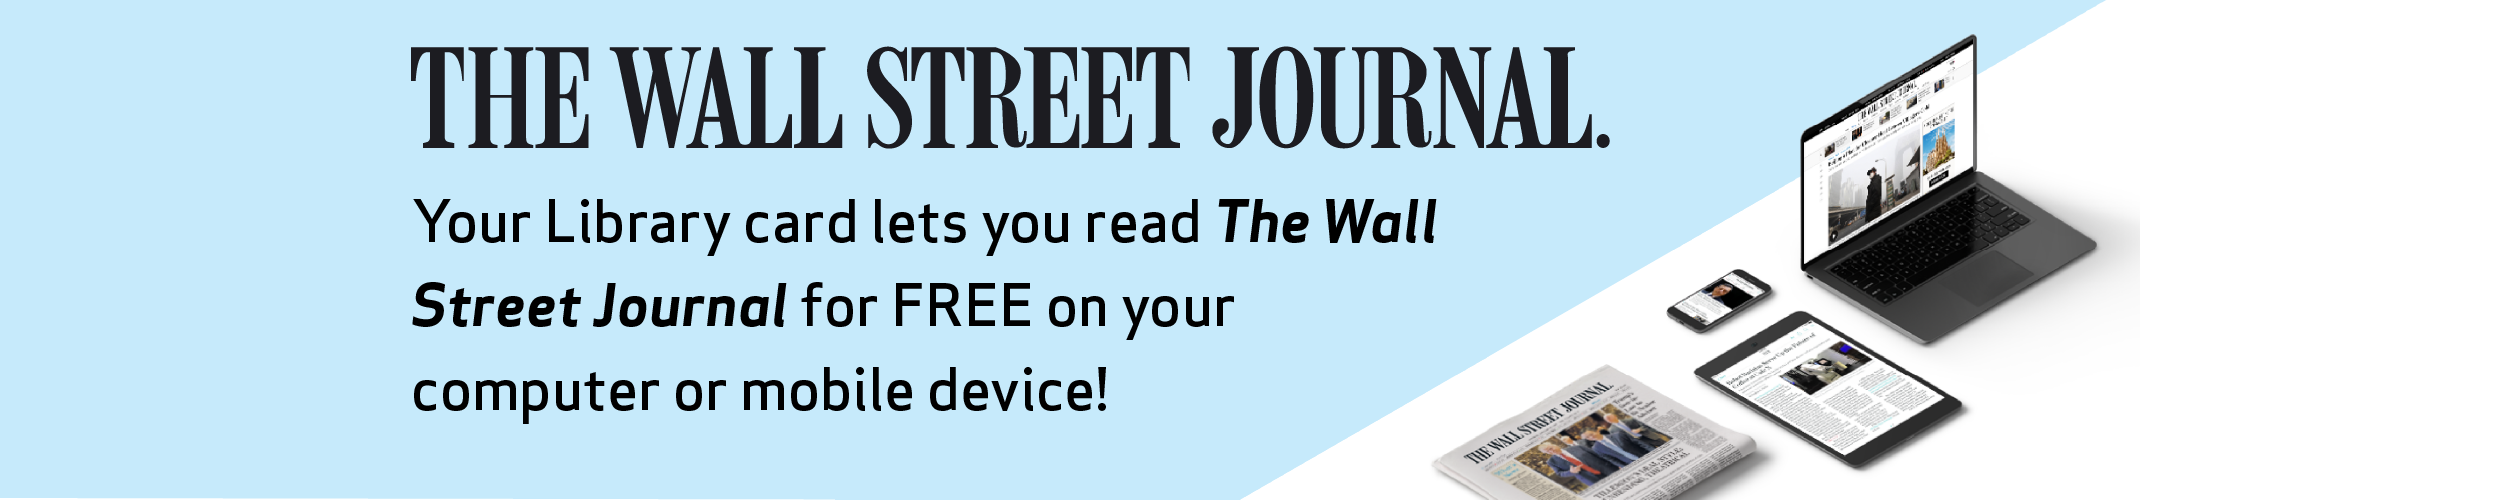 "The Wall Street Journal. Your Library card lets you read ""The Wall Street Journal"" for free on your computer or mobile device!"